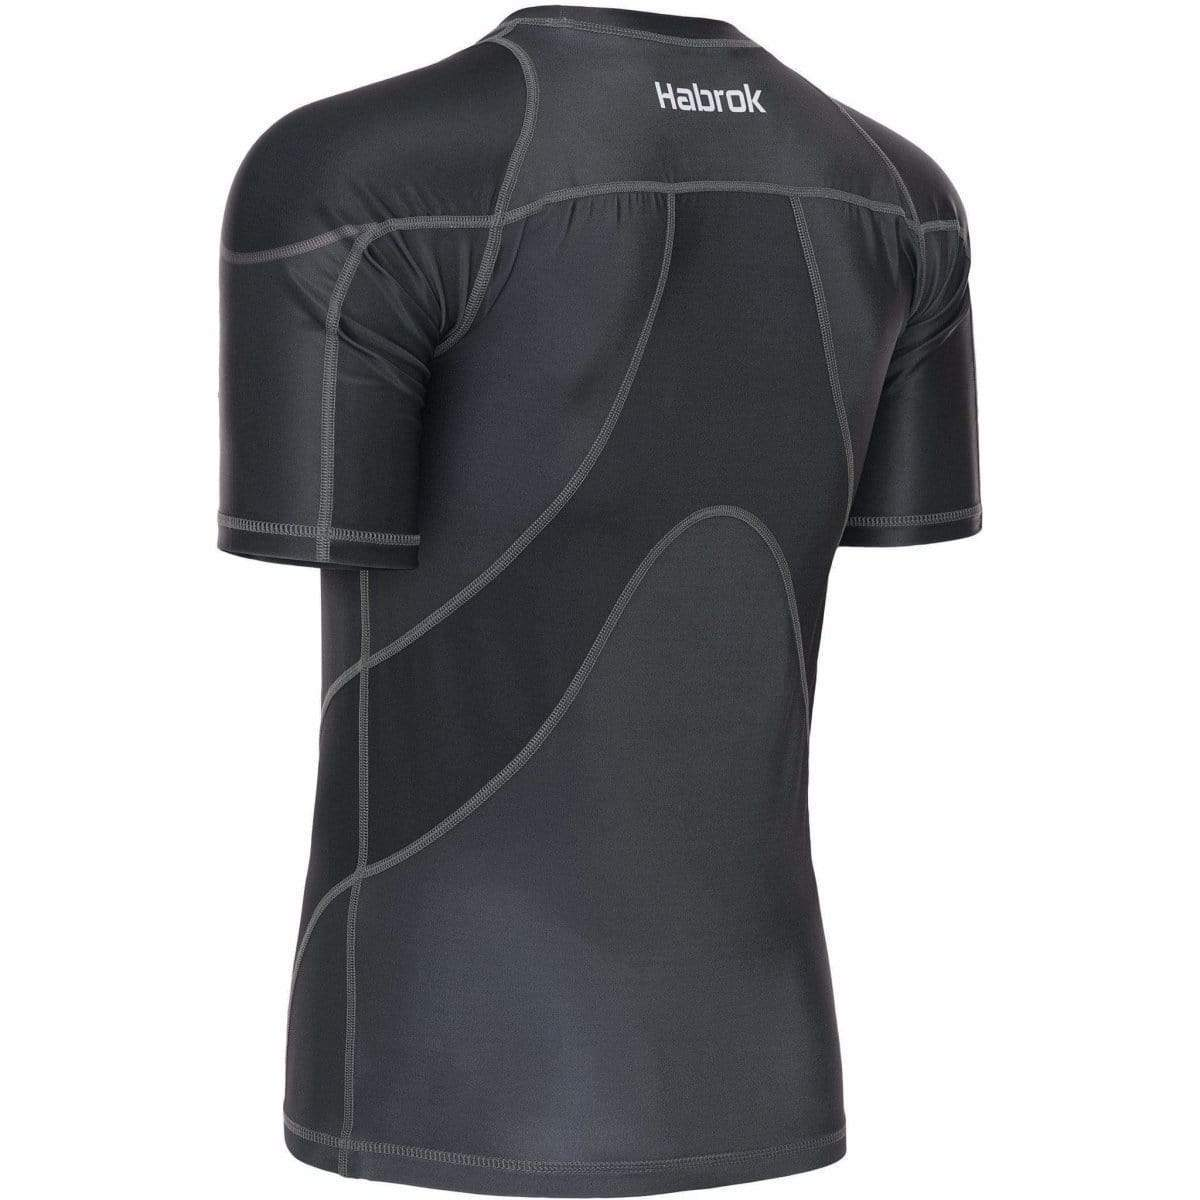 Habrok Rash Guard Pugnator 2.0 | Rash Guard | Half Sleeve | Men | Grey Pugnator | BJJ Rash Guard | Habrok